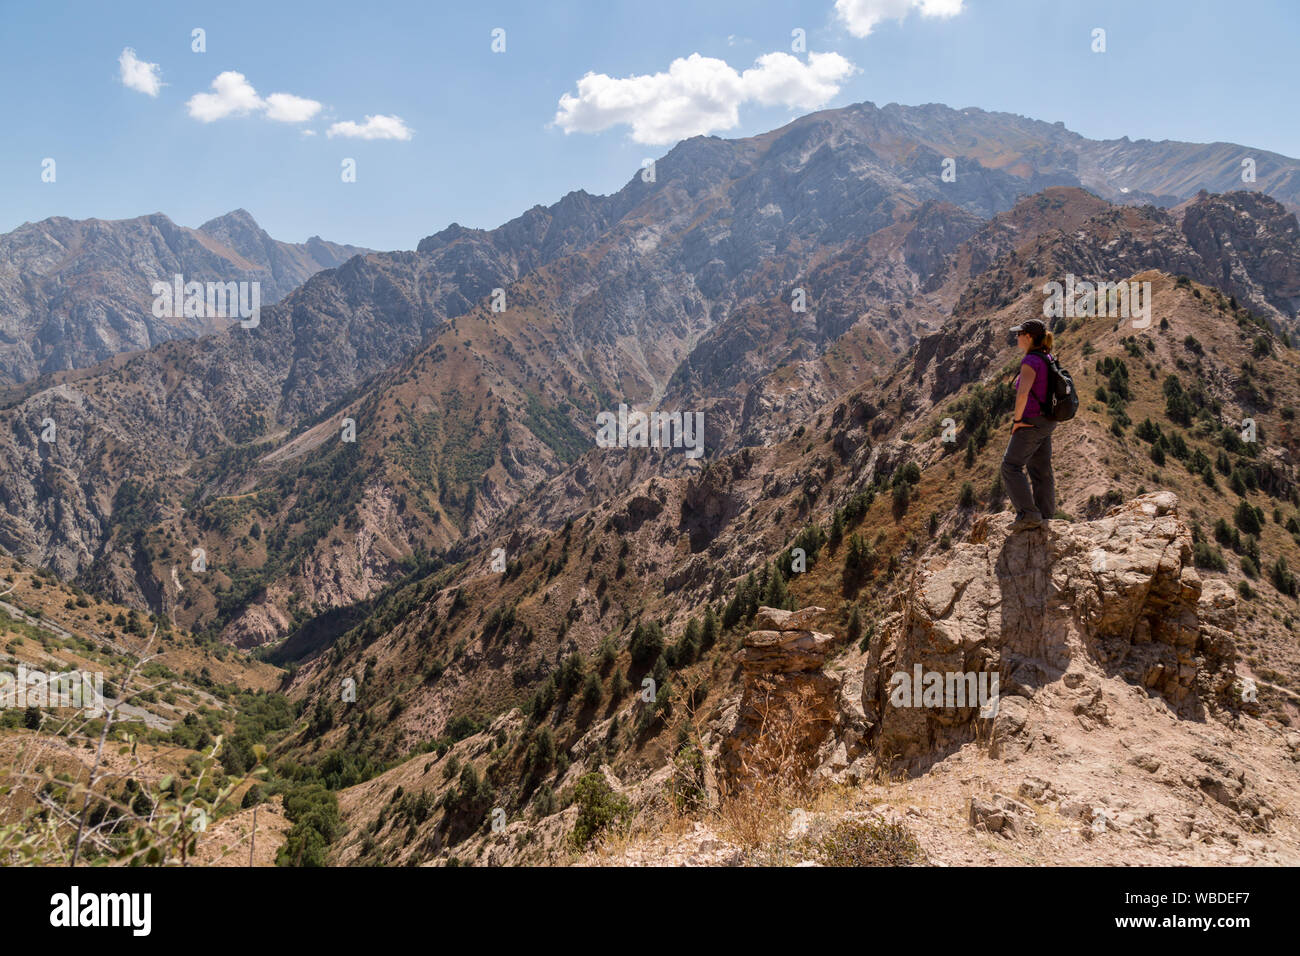 The Chatkal mountains in the Ugam-Chatkal National Park in Uzbekistan. Stock Photo